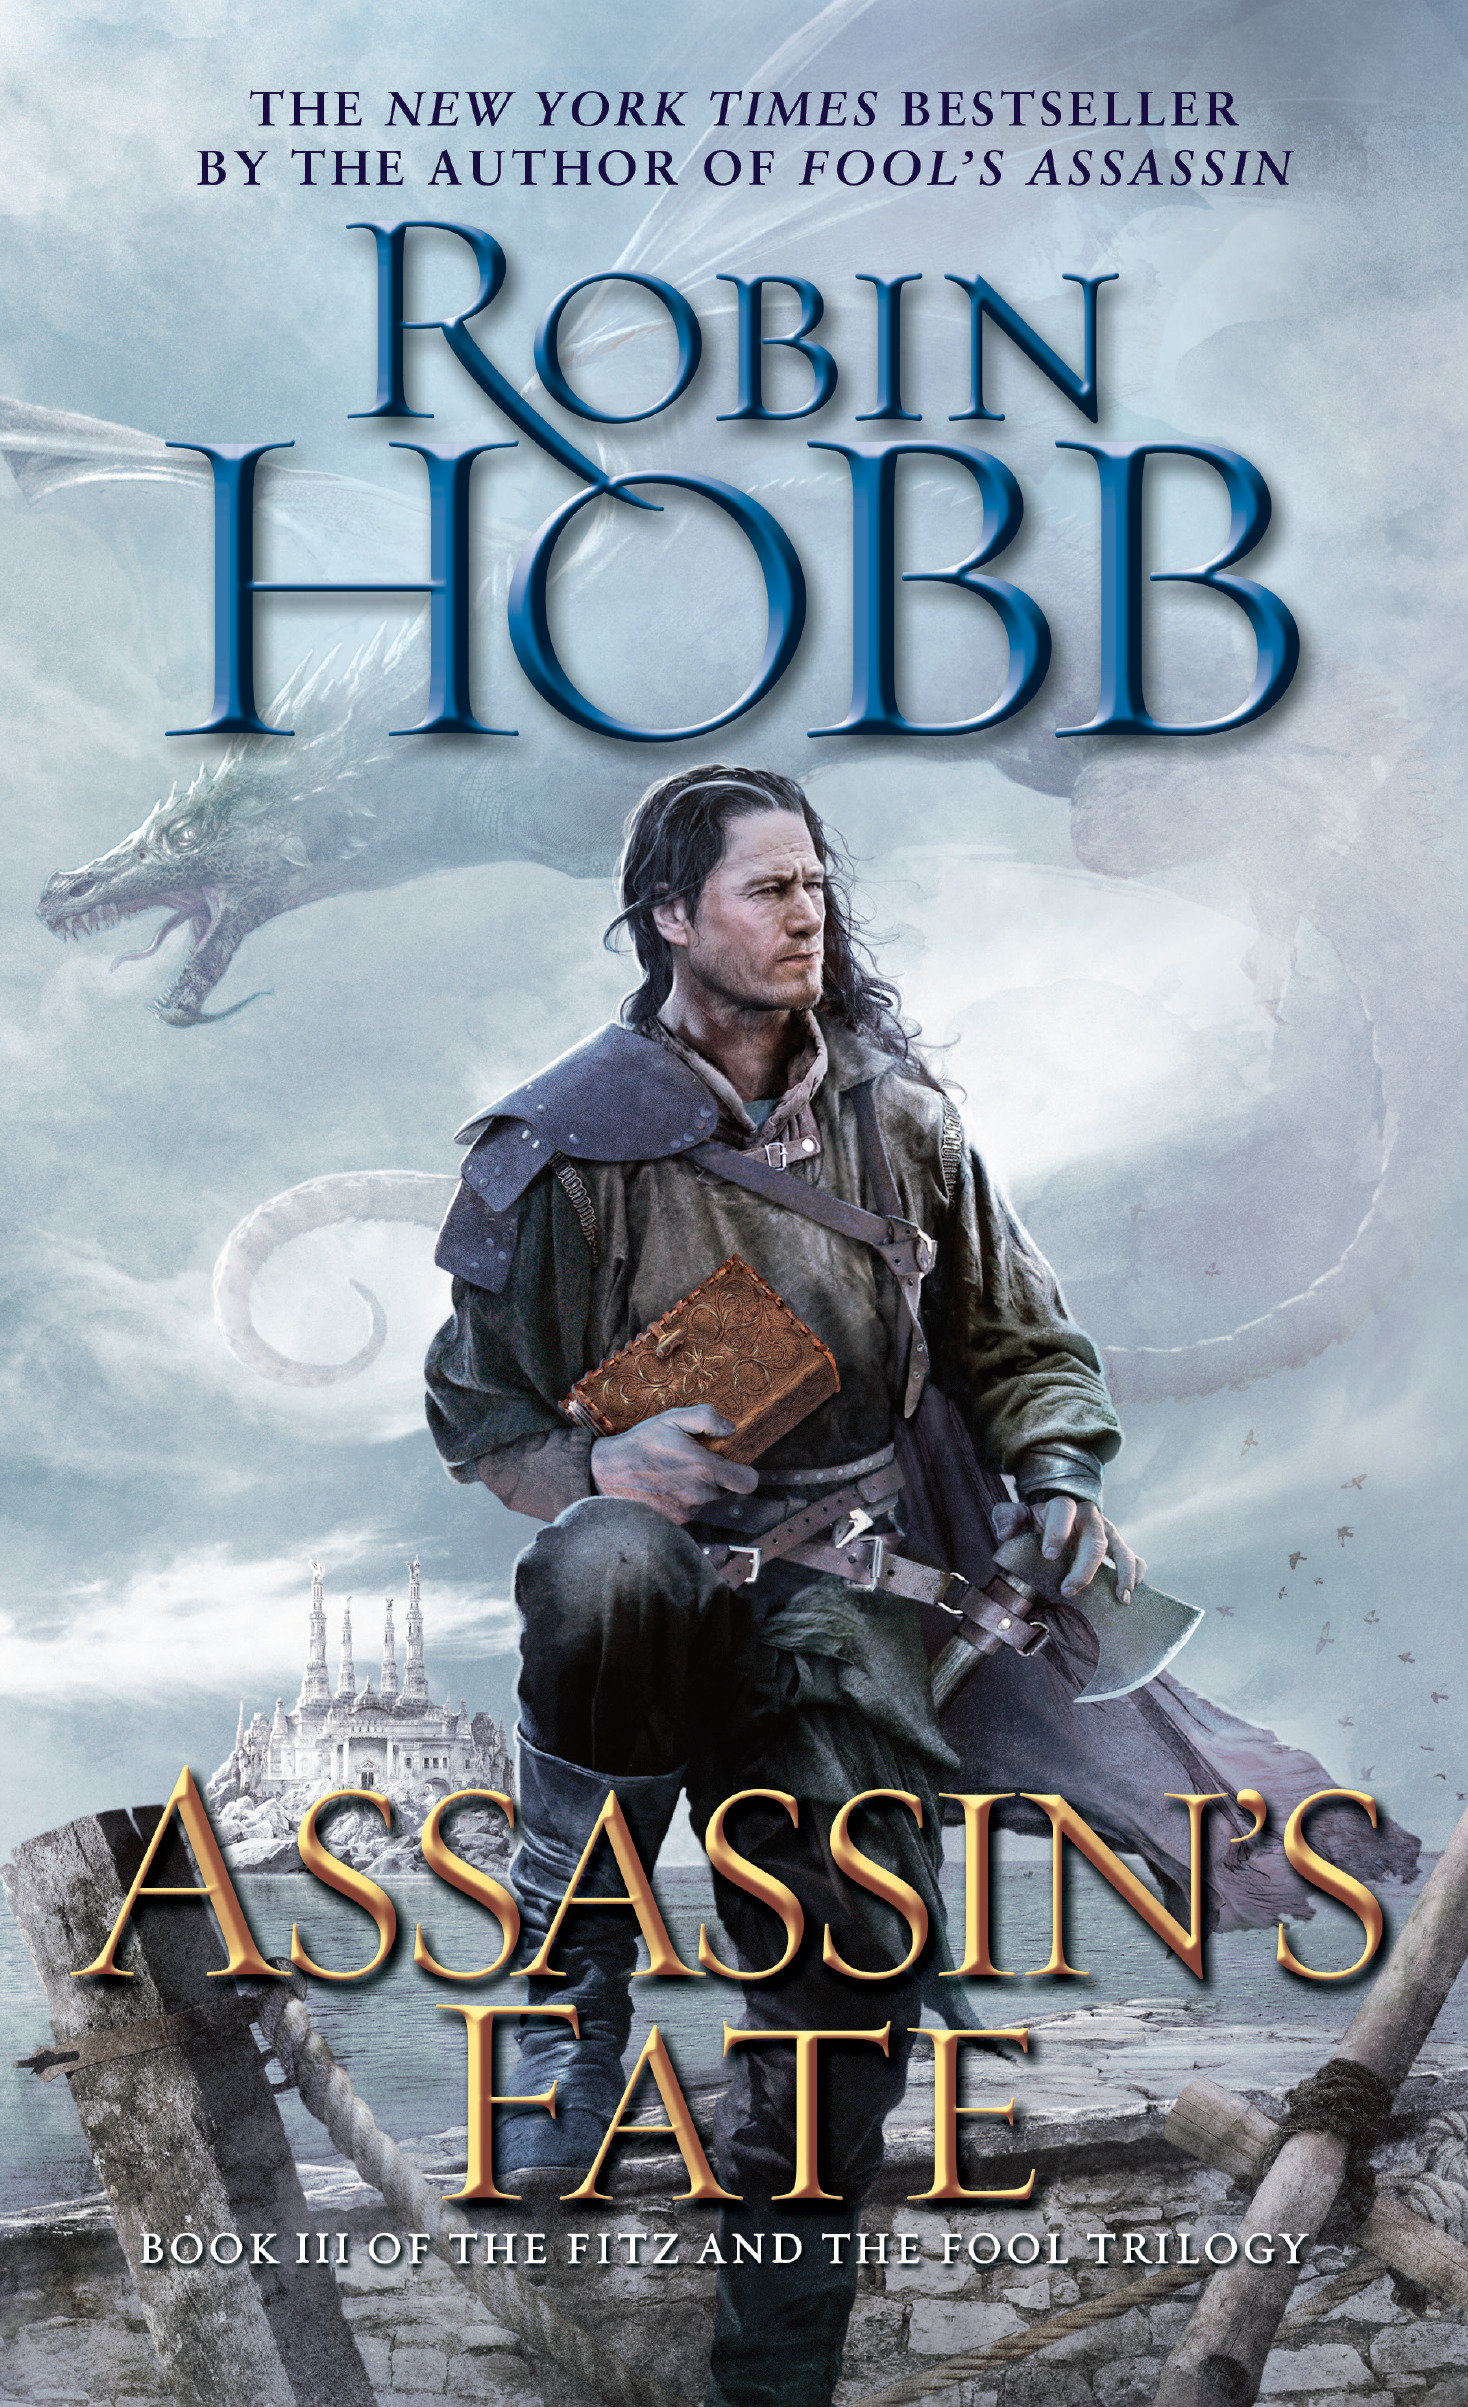 Assassin's Fate Book III of the Fitz and the Fool trilogy